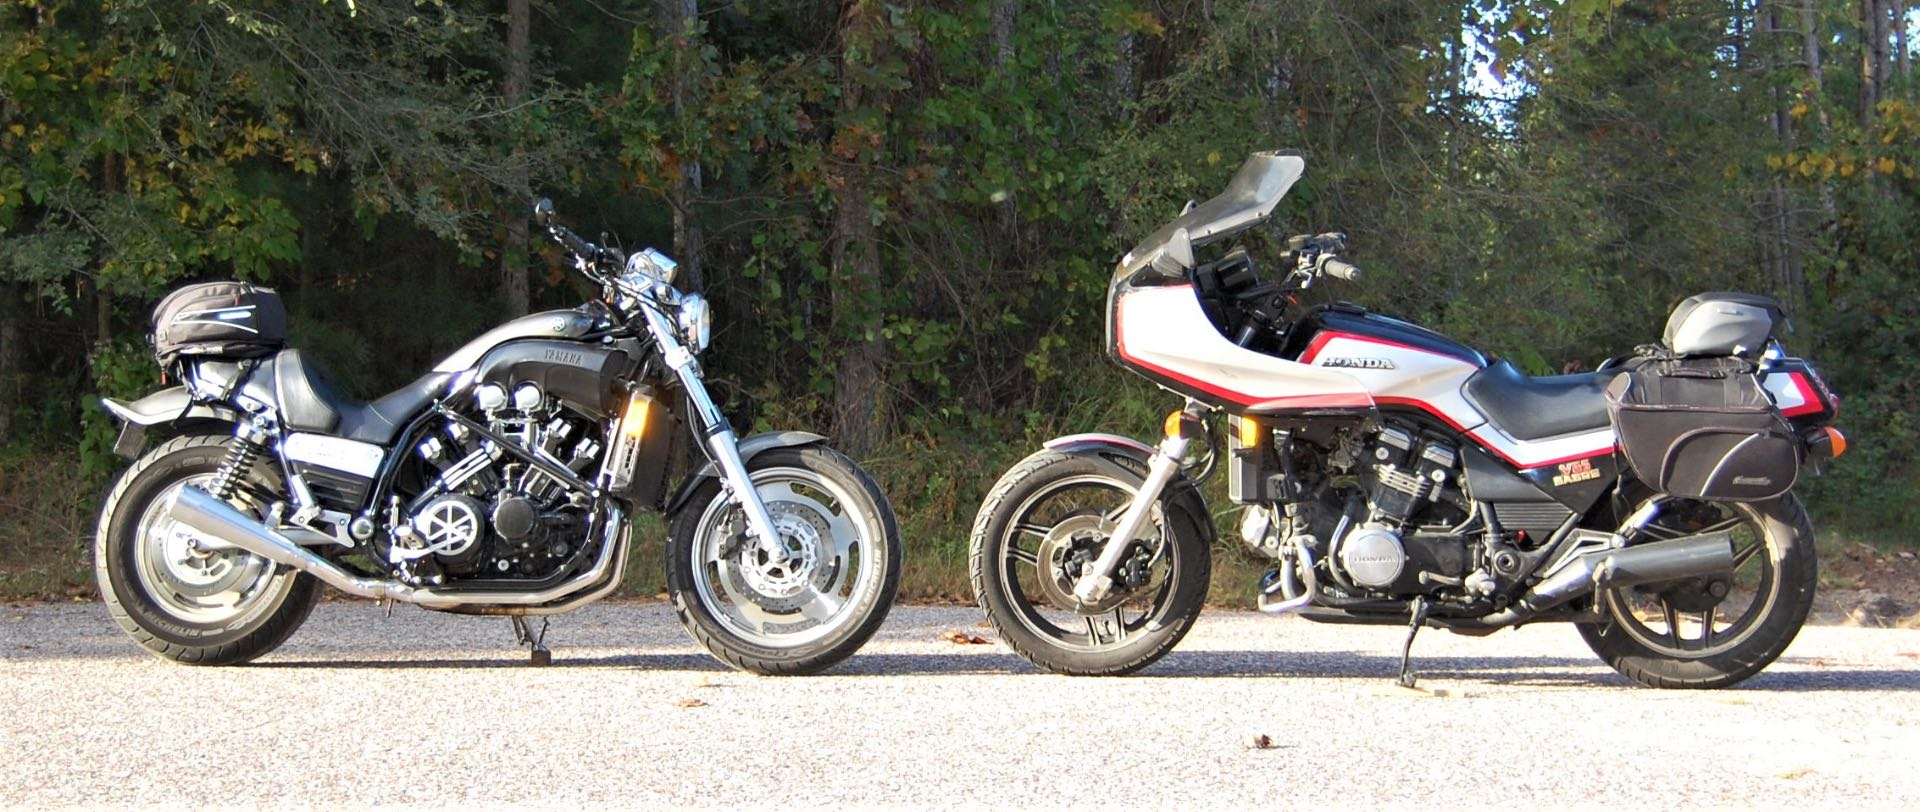 Head-to-head V4s—a 2002 Yamaha Carbon Fiber Vmax or VMX 1200 (L) and 1984 Honda V65 Sabre or VF1100S. About the only real similarity is plenty of V4 power.